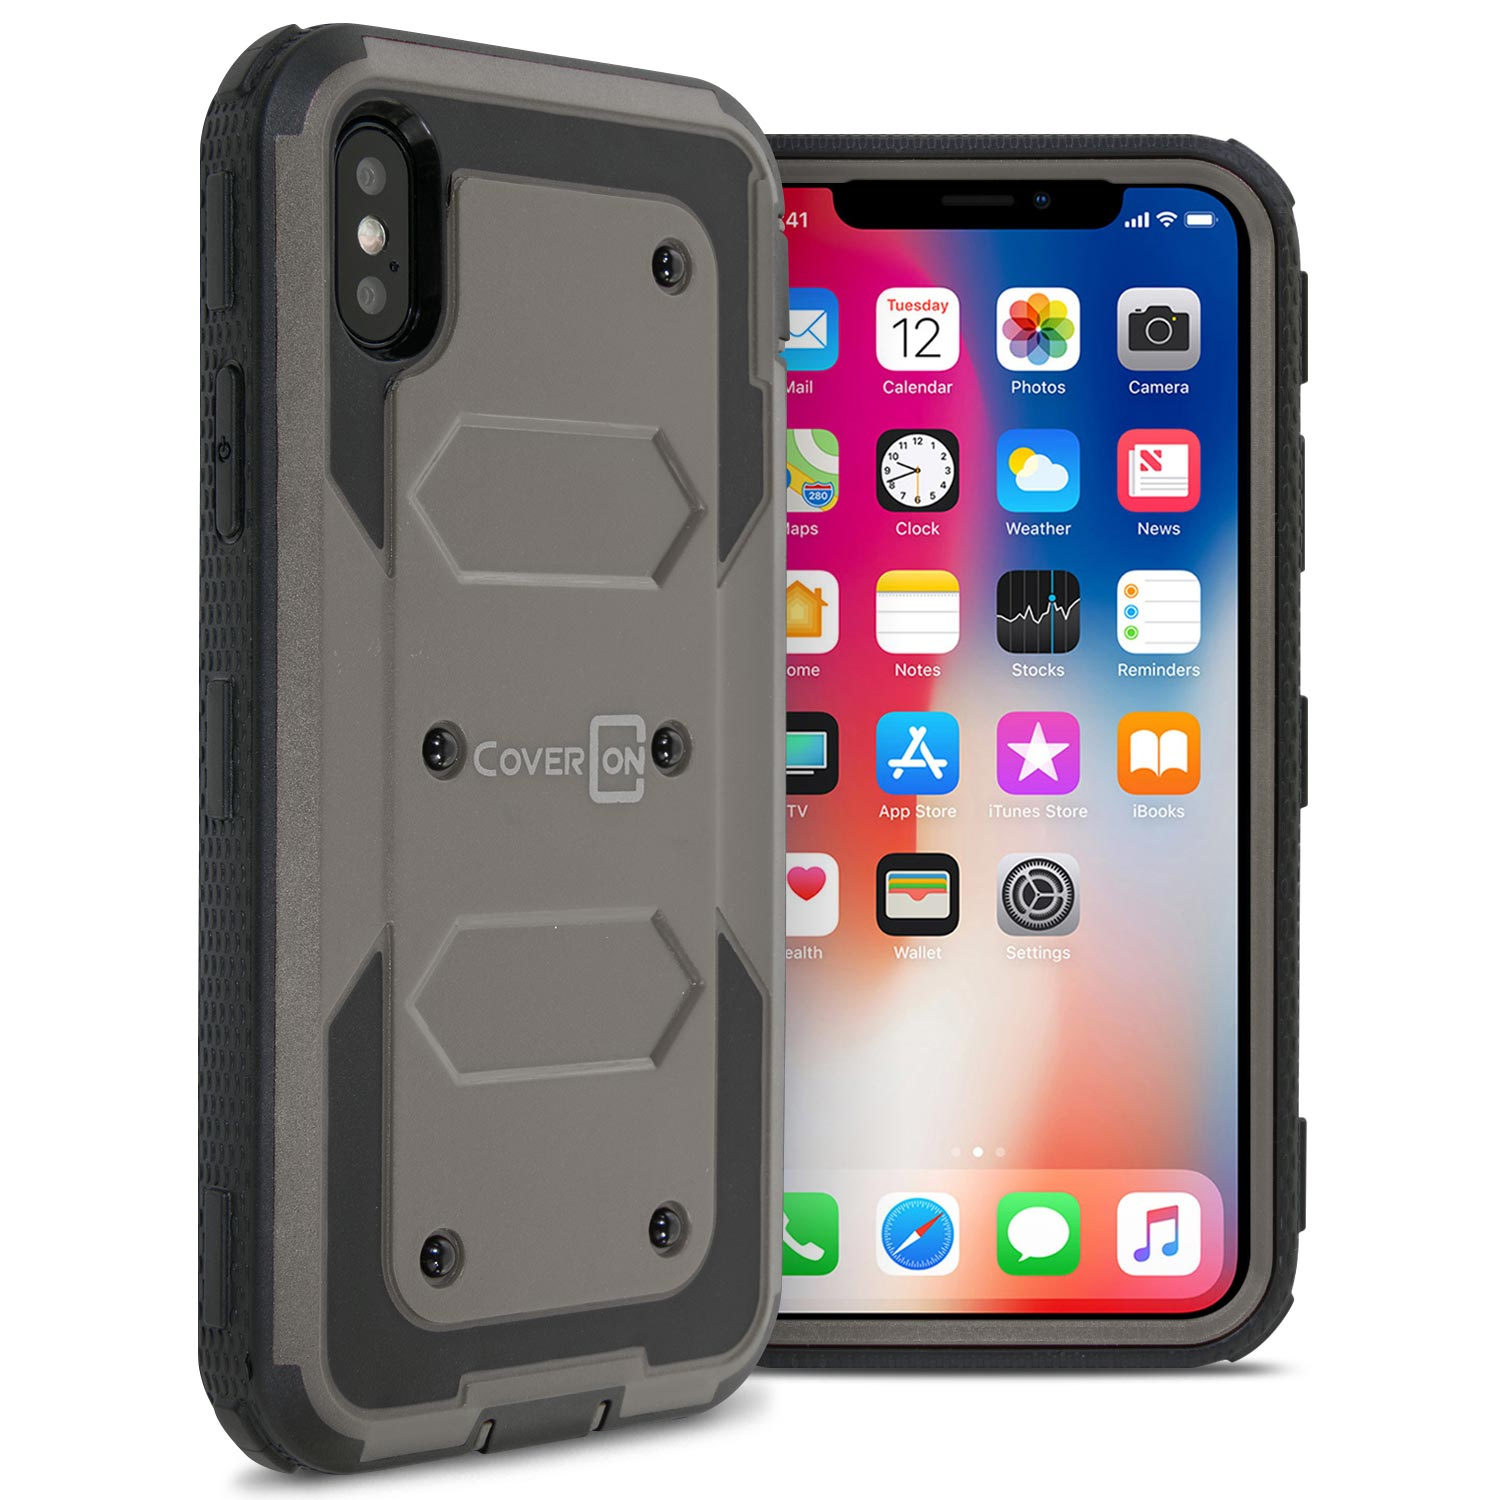 prestige telephone case 16 2 50, 2 to find the break-even point, we need to know a) fixed costs and b)  contribution  you can use a spreadsheet to explore the 4 alternative scenarios  listed in the case  16, administration, f, 9,000, cm per hour of commercial work , 772.